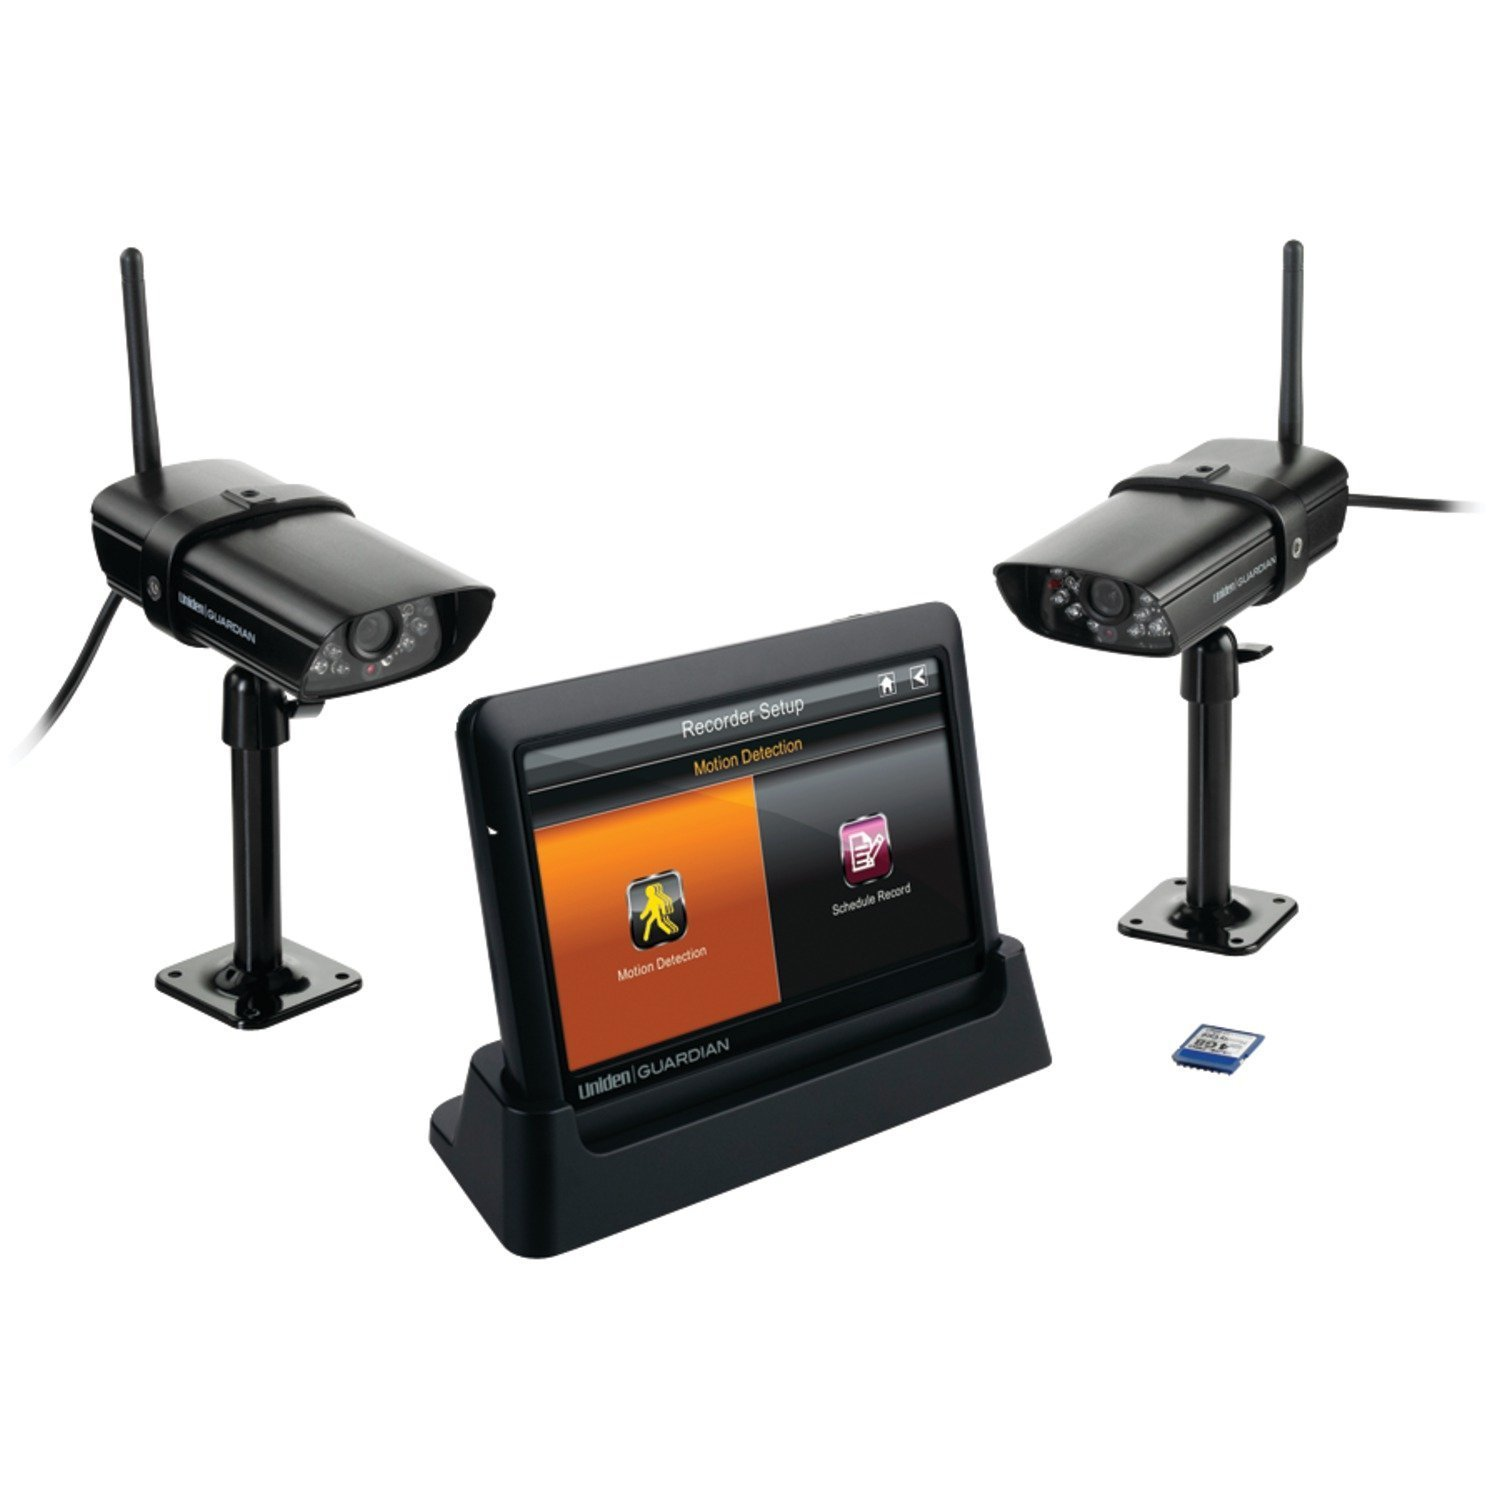 Amazon.com : Uniden Guardian Advanced Wireless Security System with ...